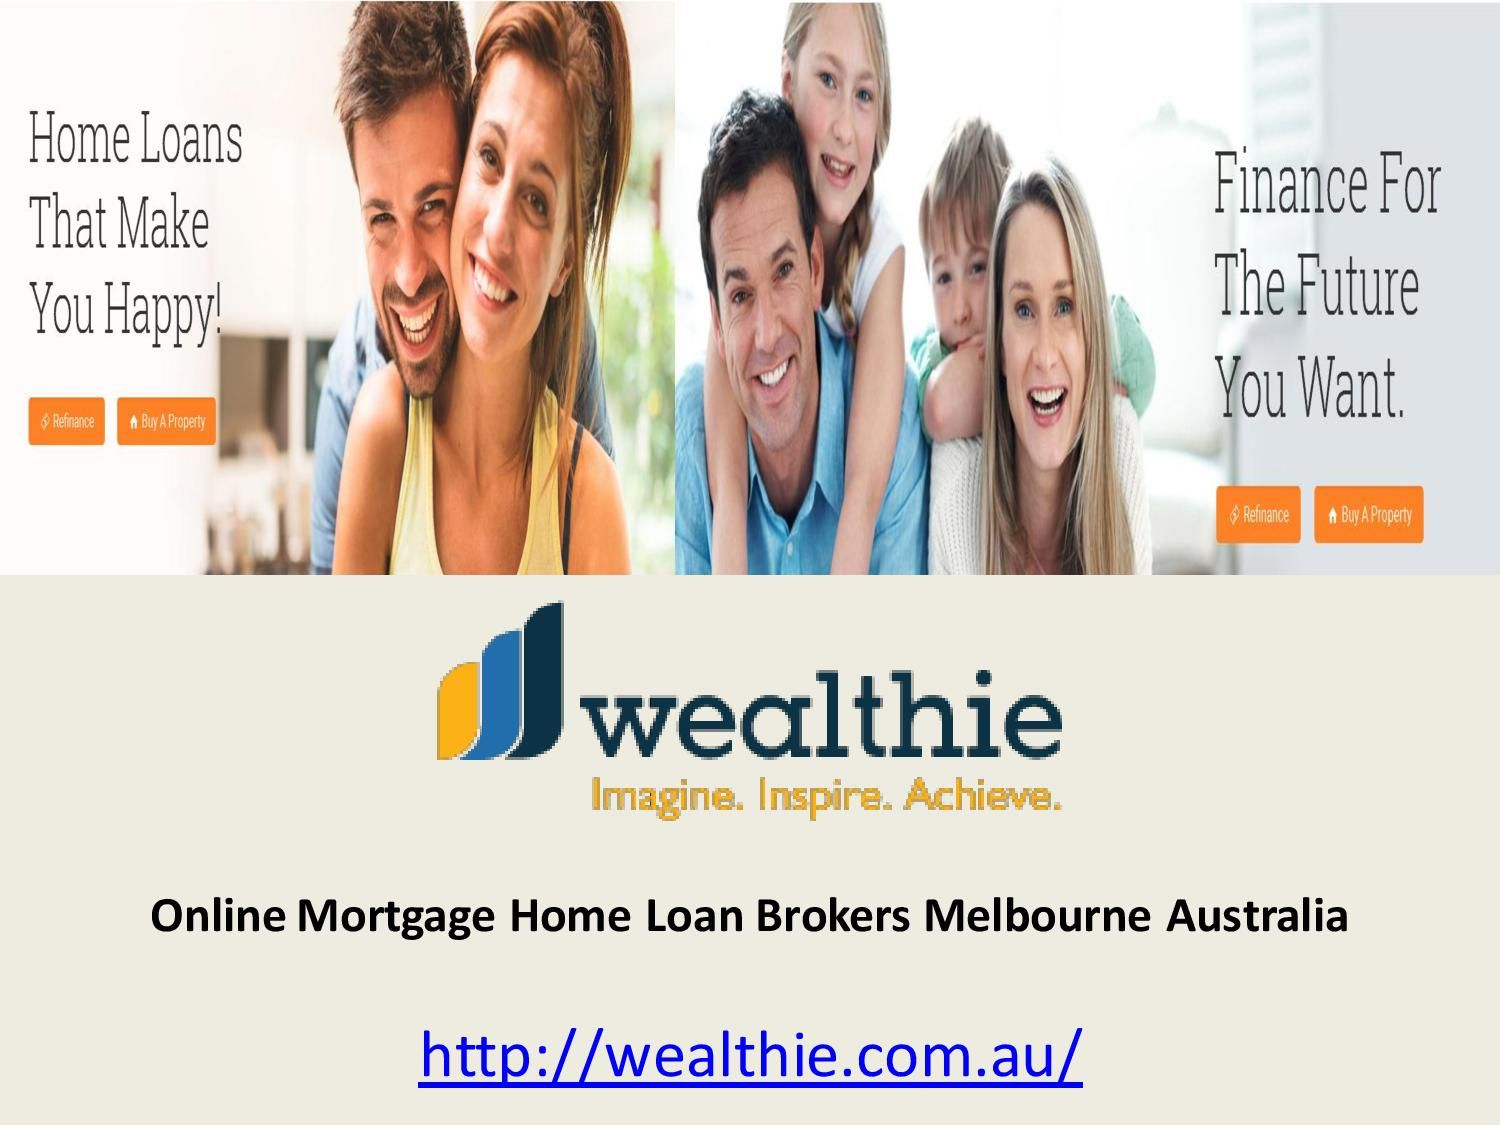 Wealthie is one of the leading mortgage brokers in Melbourne, which provides Basic Home loans, Bank loan calculator, how much can I borrow calculator, investment loans in Melbourne. Read More - http://wealthie.com.au